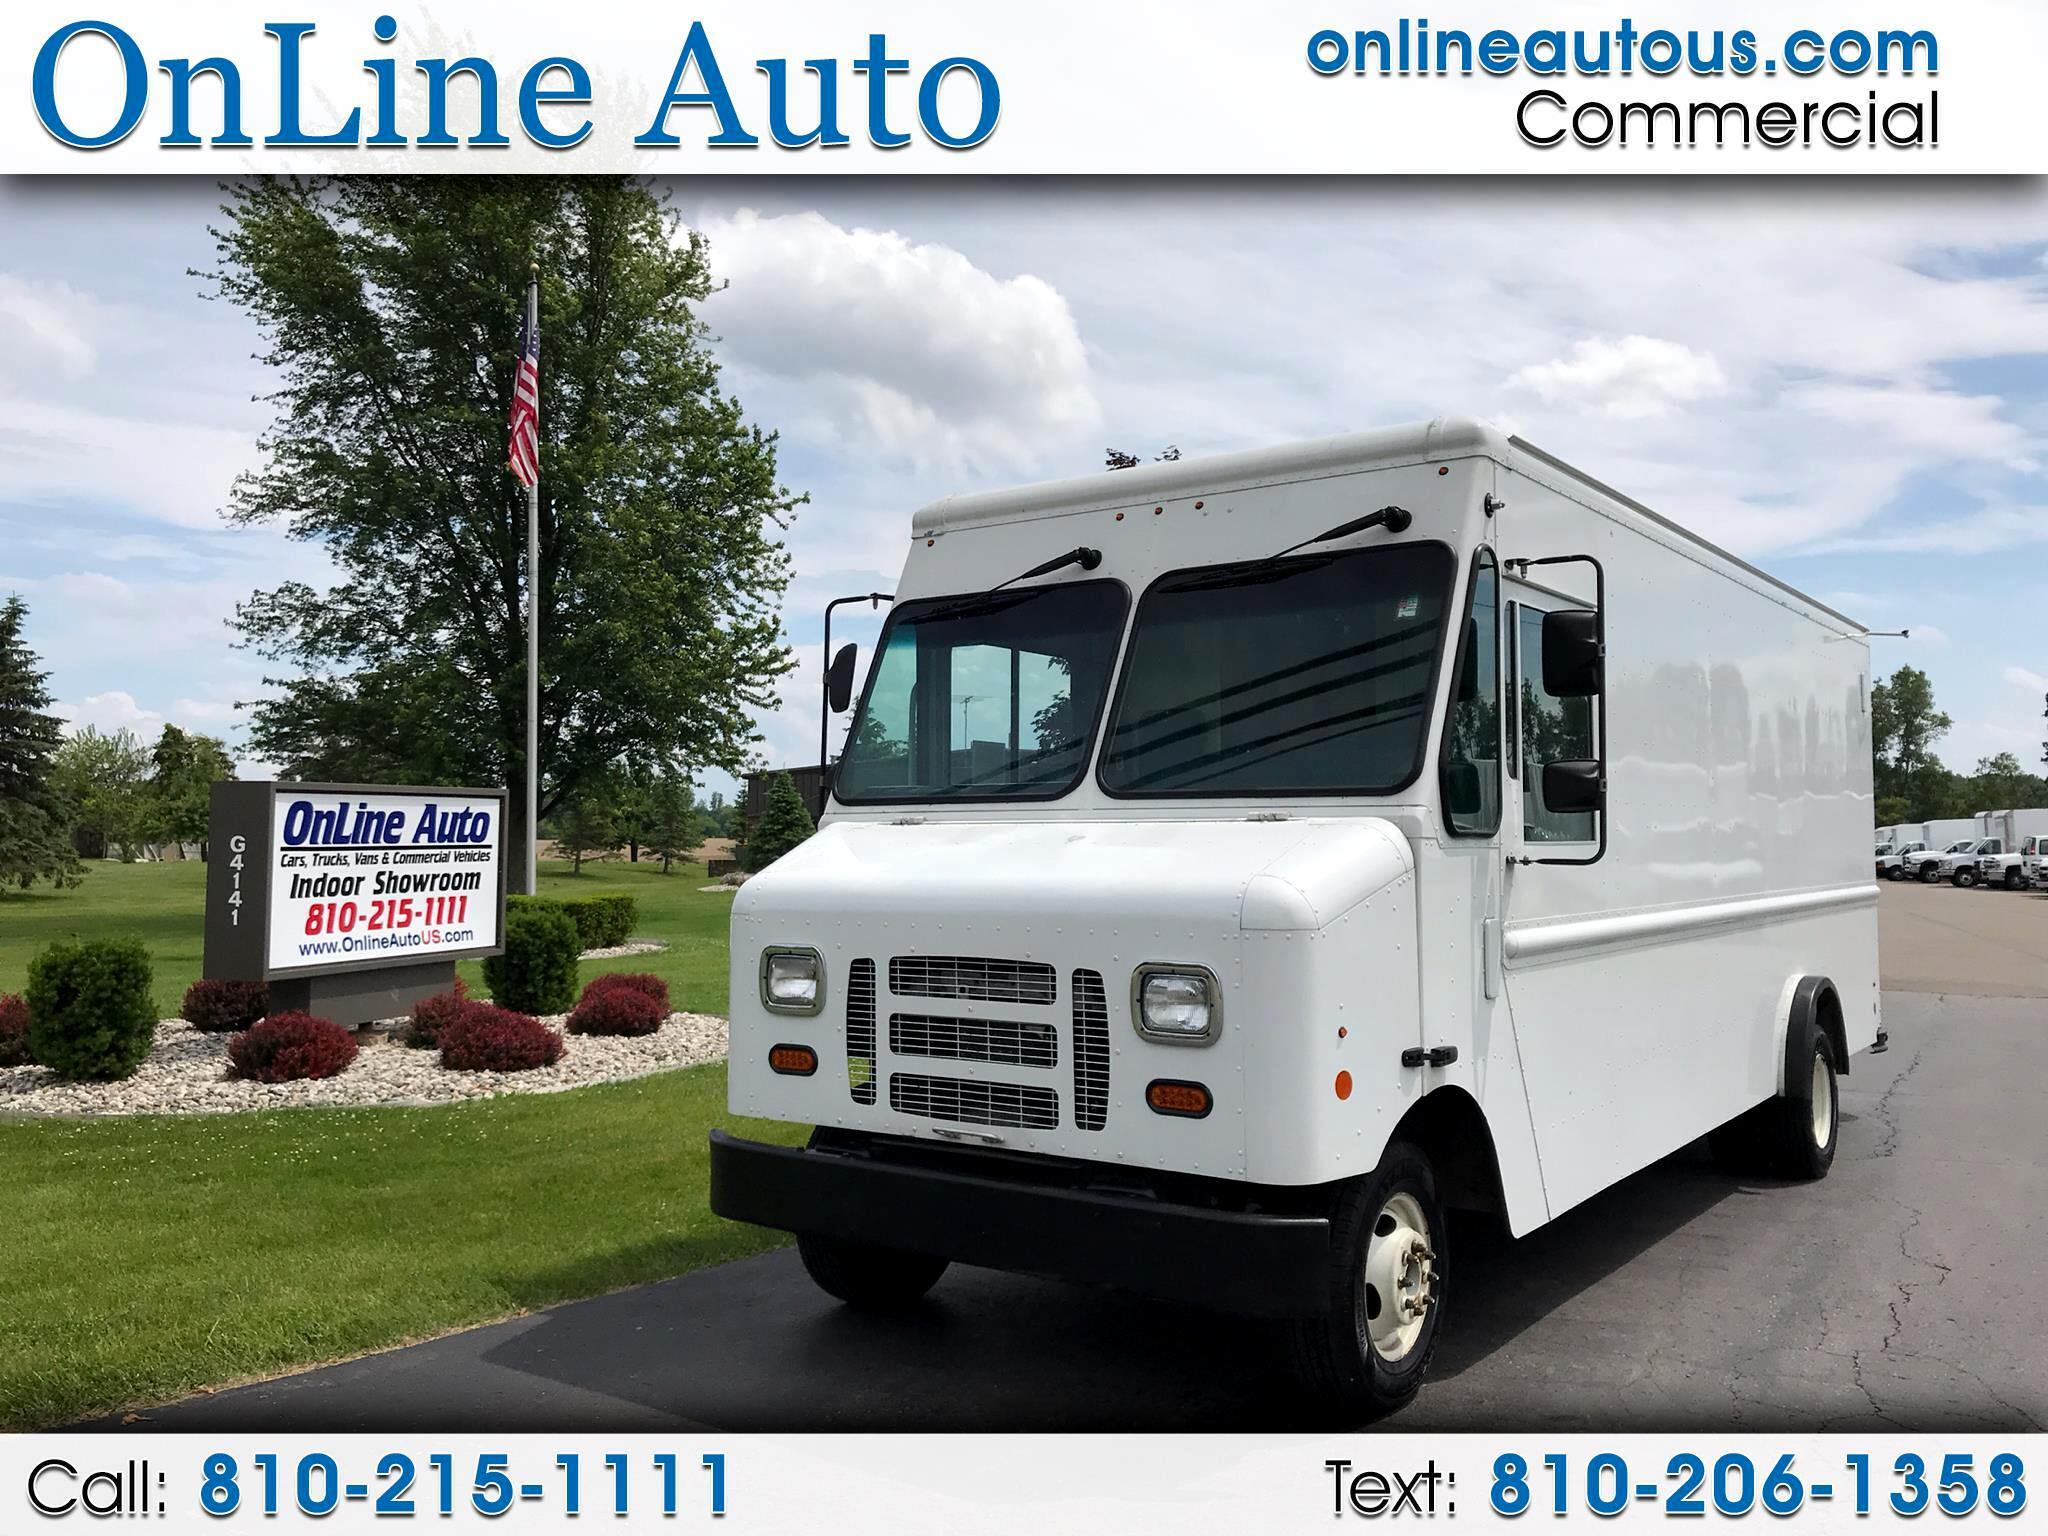 2015 Ford E-250 16' STEP VAN W/CLOTHING POLES